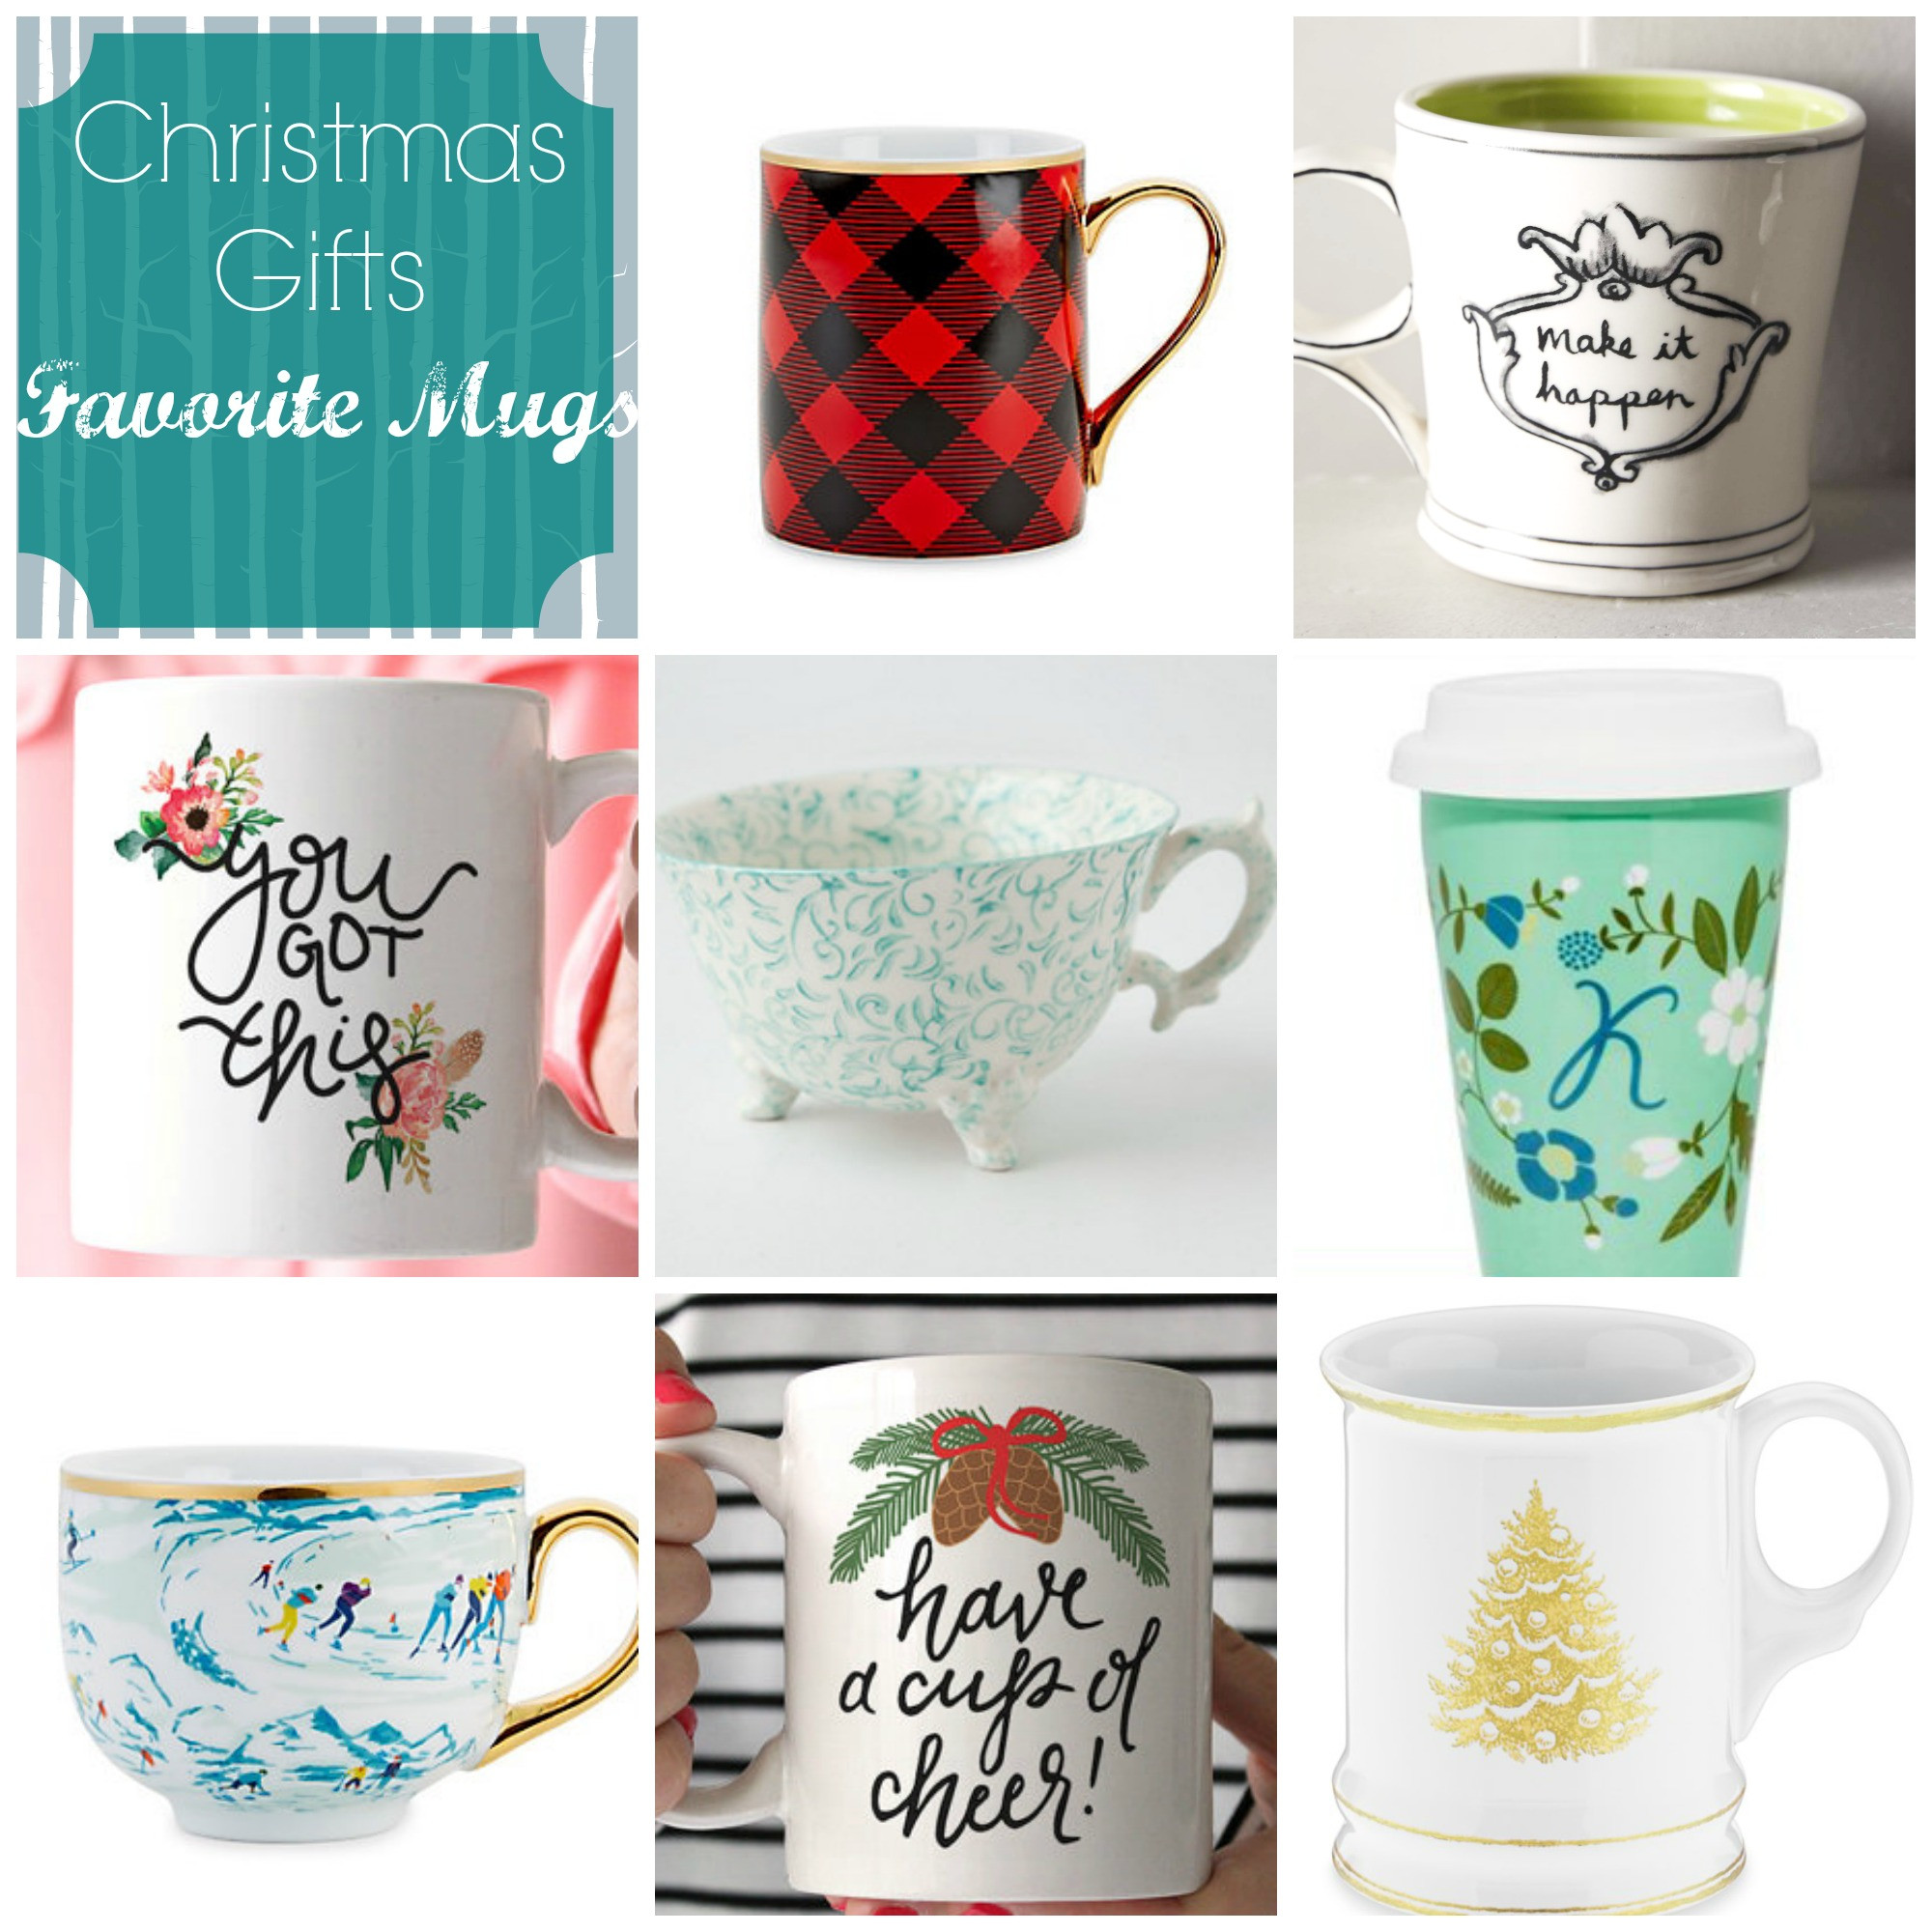 Best ideas about Christmas Mug Gift Ideas . Save or Pin Christmas Gift Ideas The Perfect Mug Now.